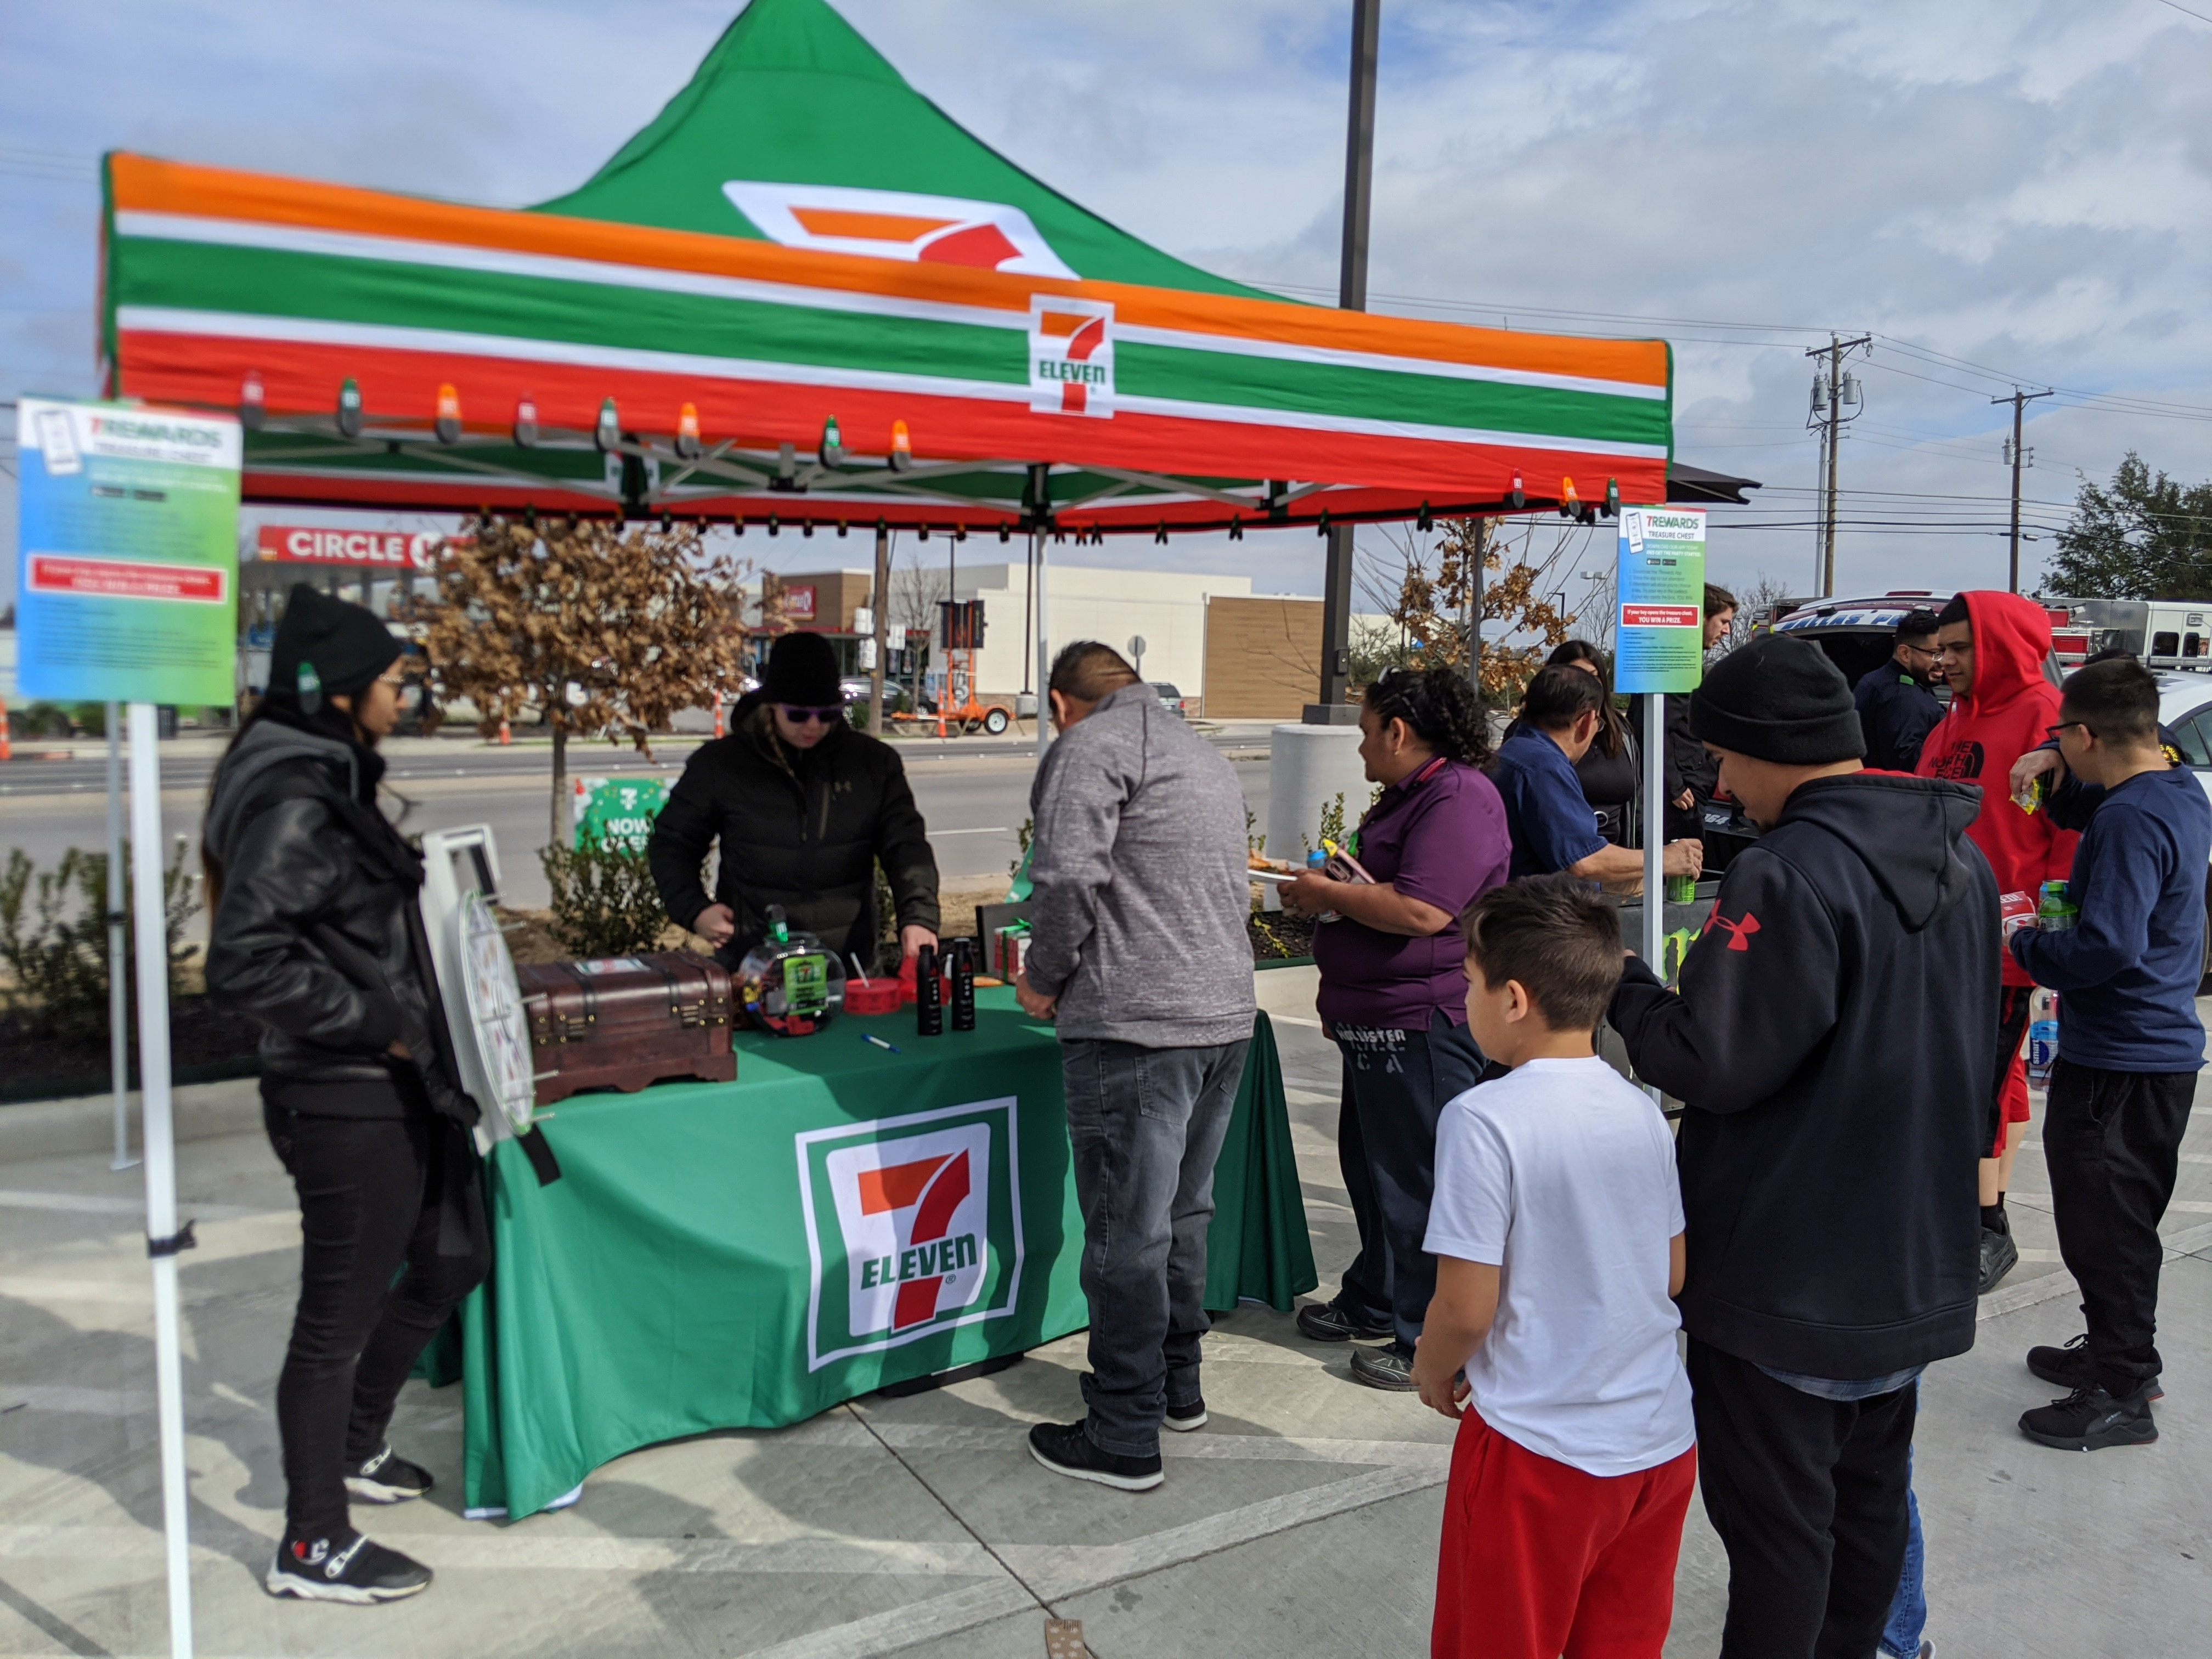 7-Eleven Grand Opening Game Tent